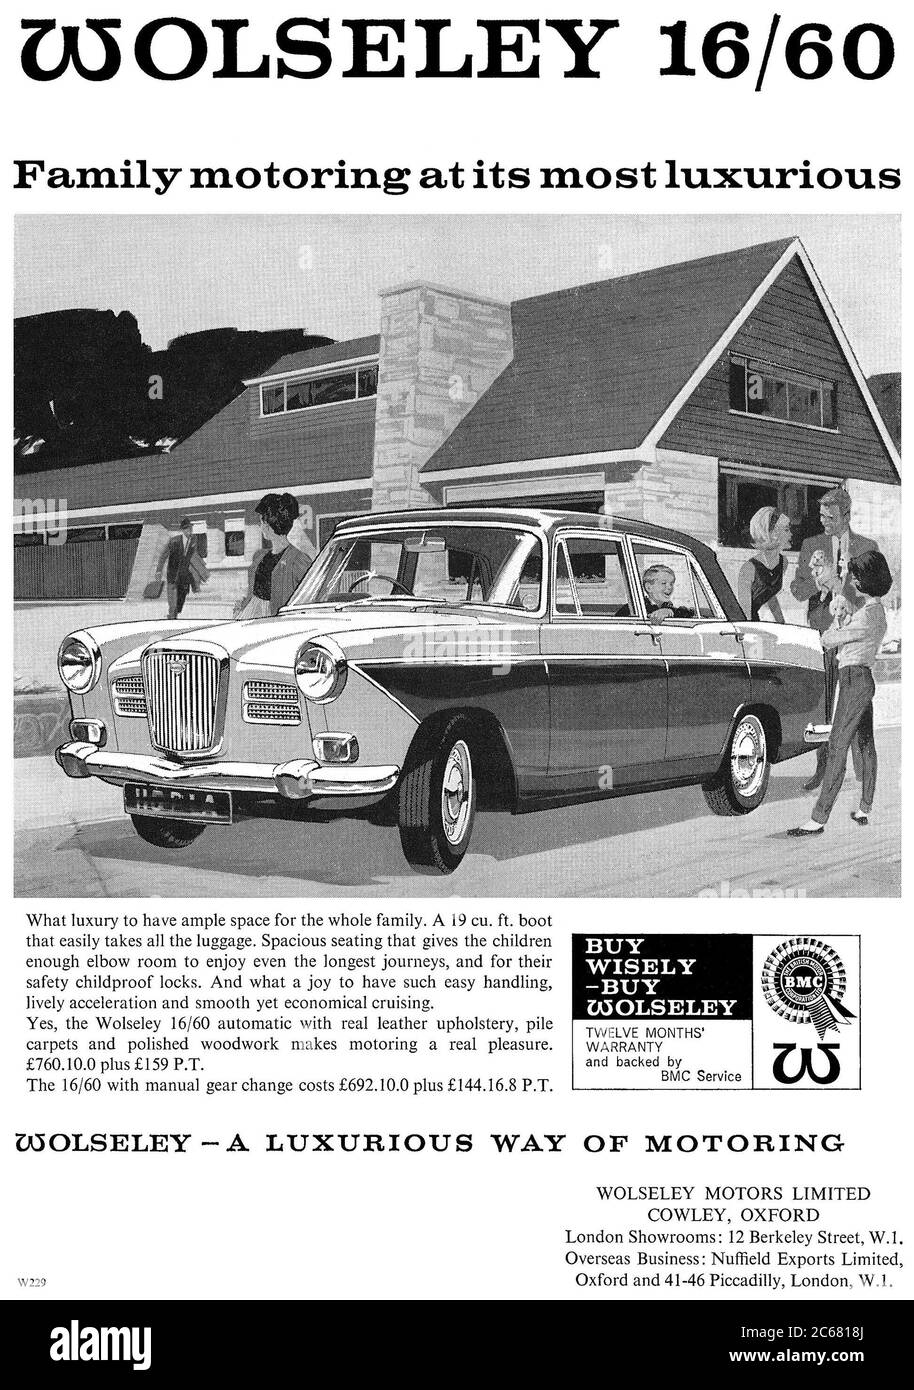 1964 British advertisement for the Wolseley 16/60 motor car. Stock Photo